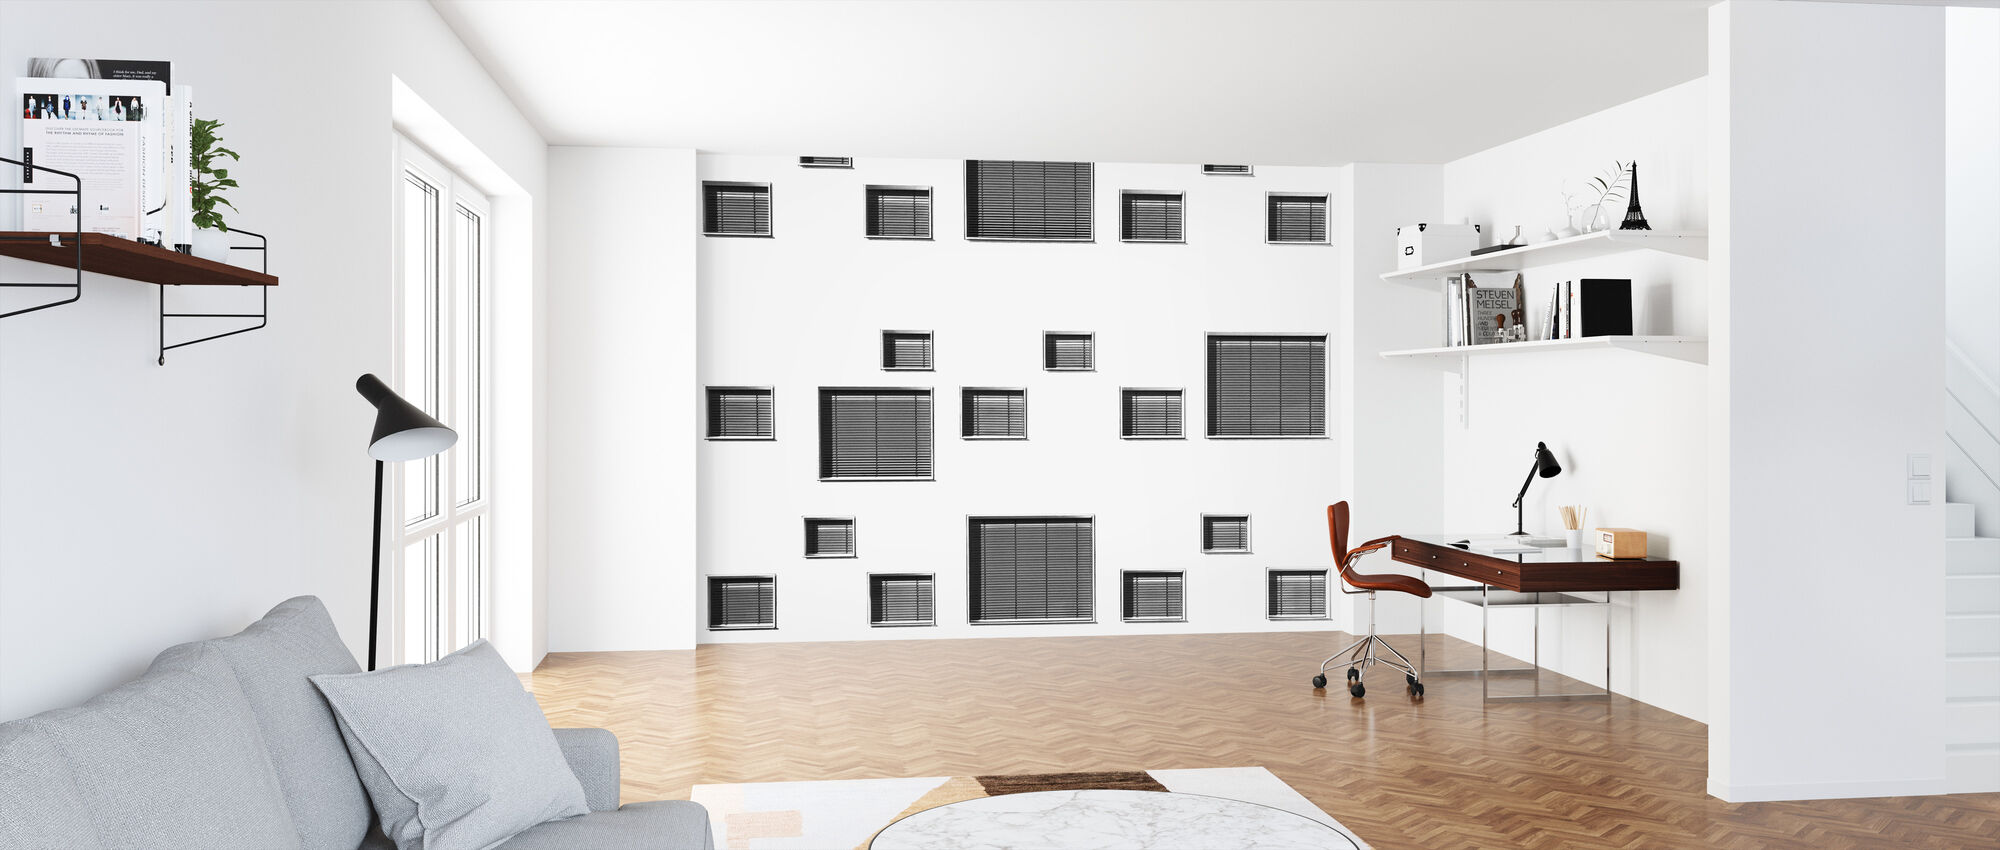 Selection of Rectangles - Wallpaper - Office